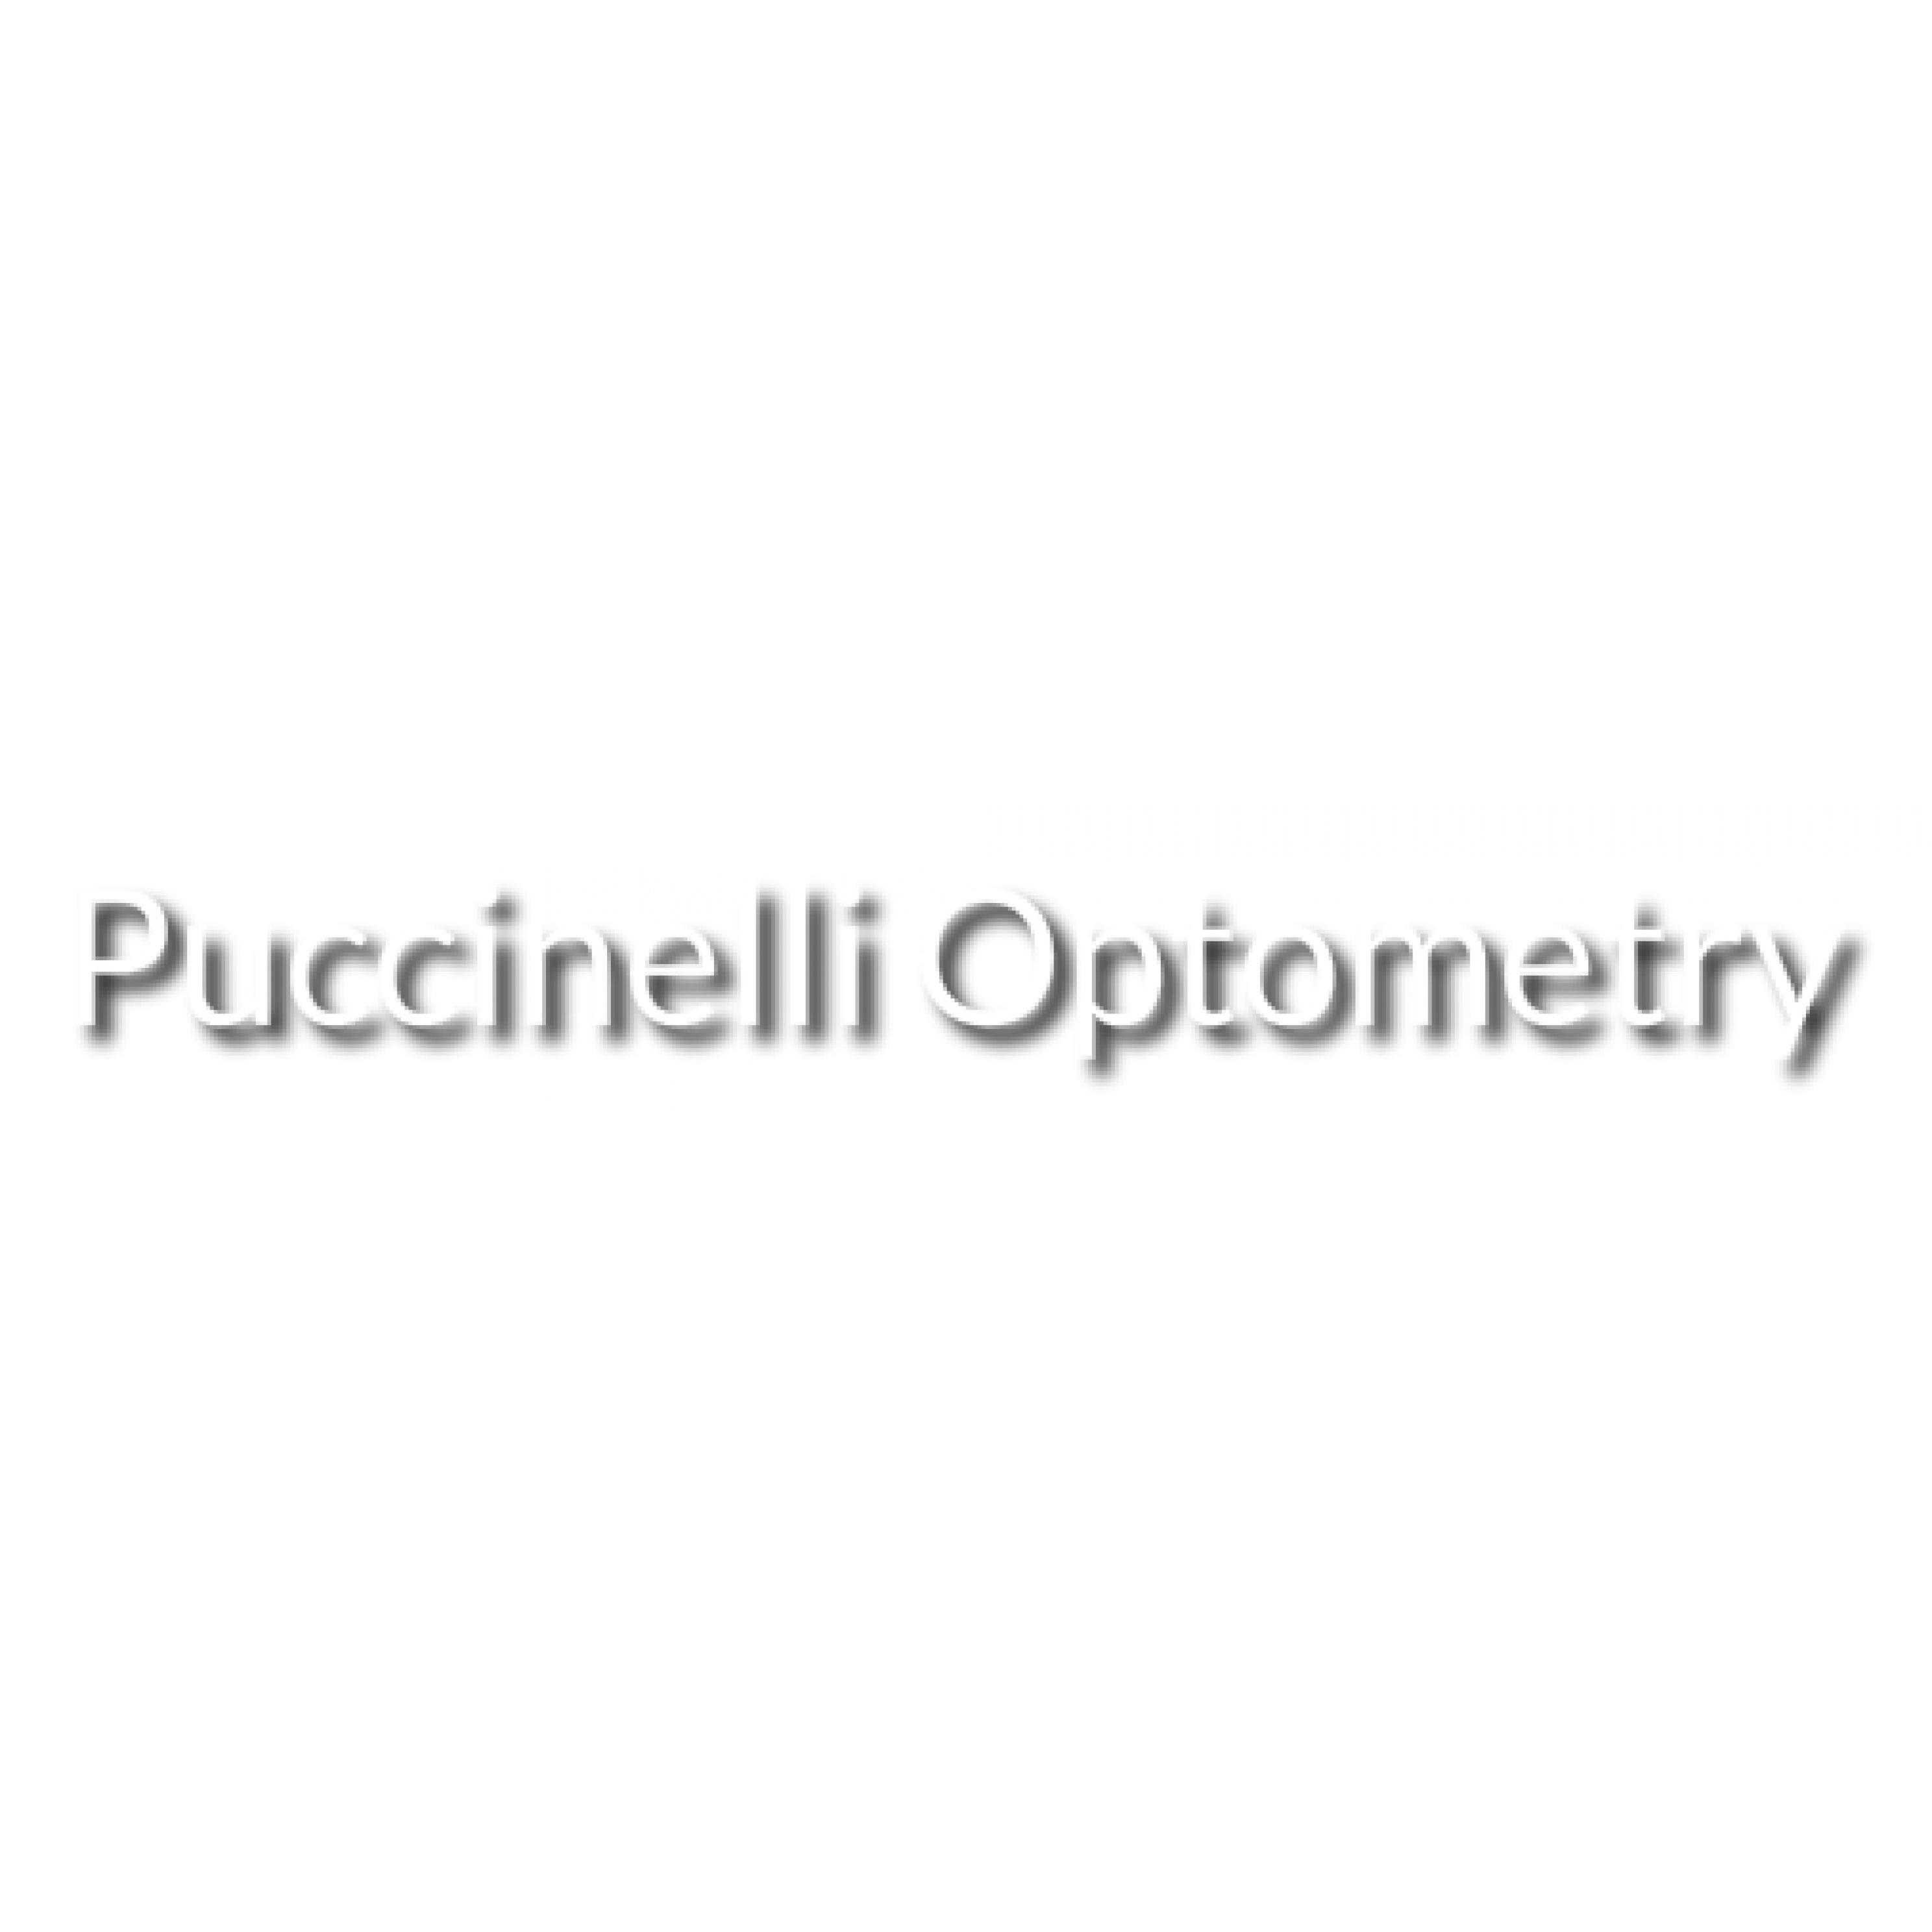 Puccinelli Optometry image 0